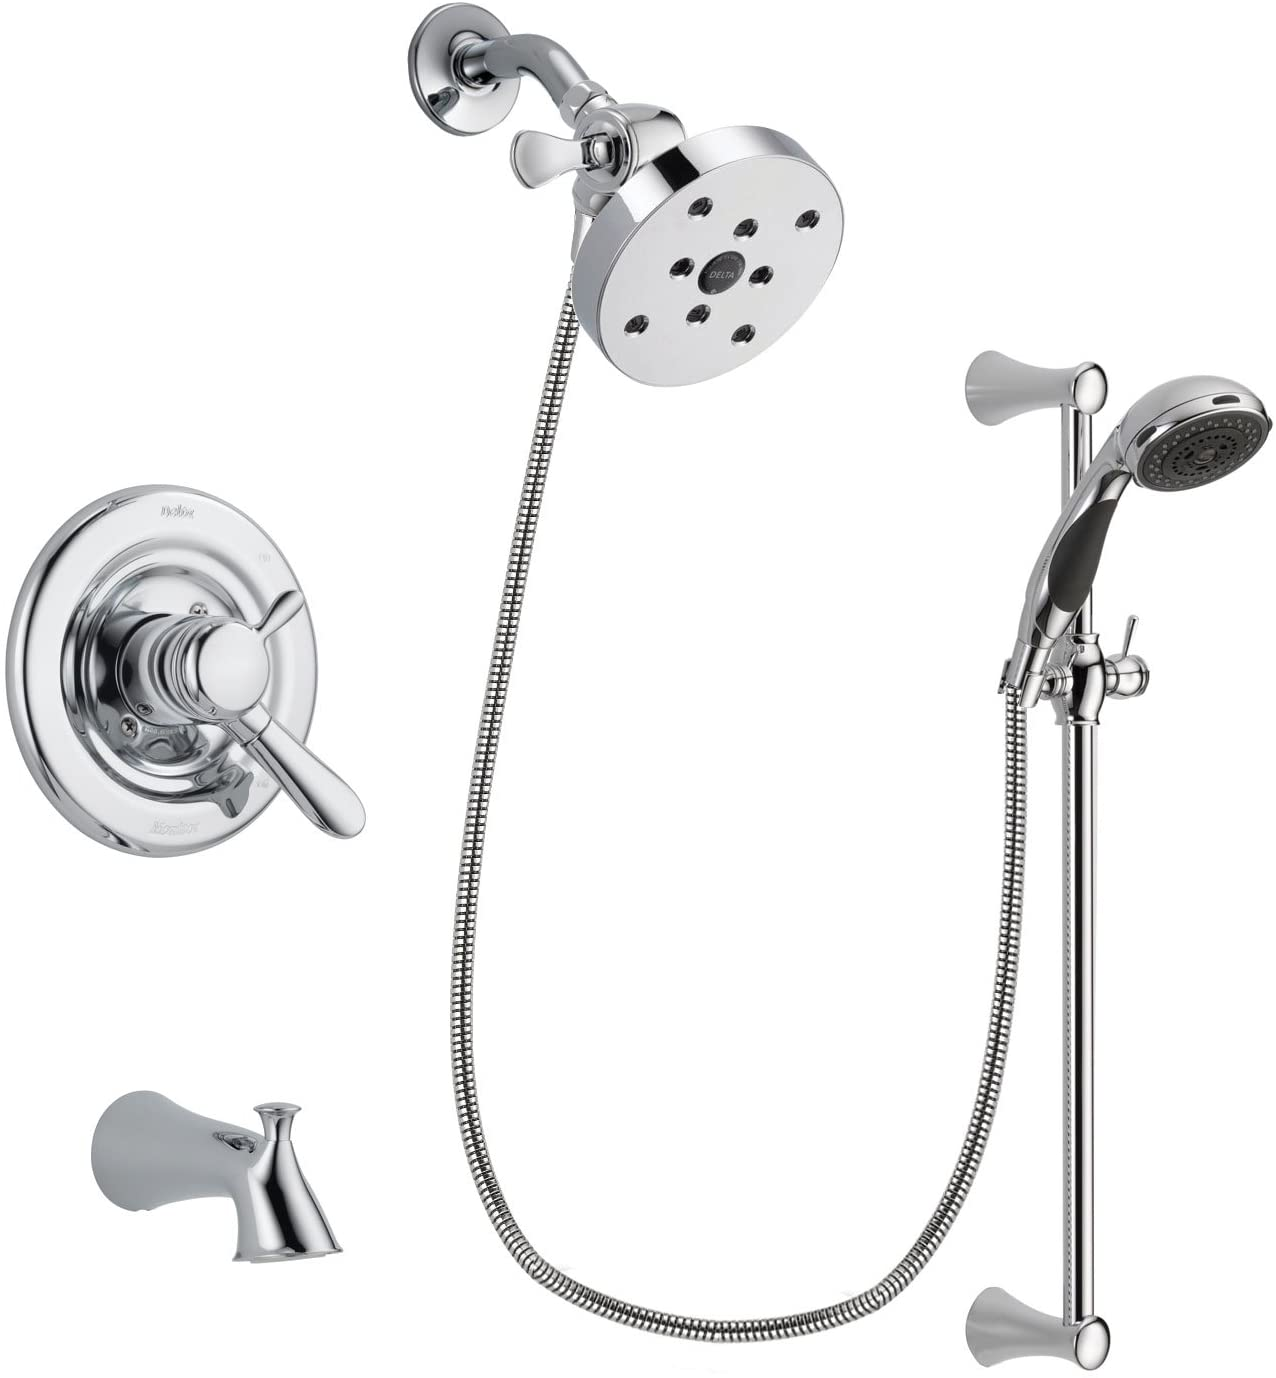 Delta Lahara Chrome Dual Control Tub and Shower Faucet System with 5-1/2 inch Shower Head and 5-Spray Wall Mount Slide Bar with Personal Handheld Shower Includes Rough-in Valve and Tub Spout DSP0819V